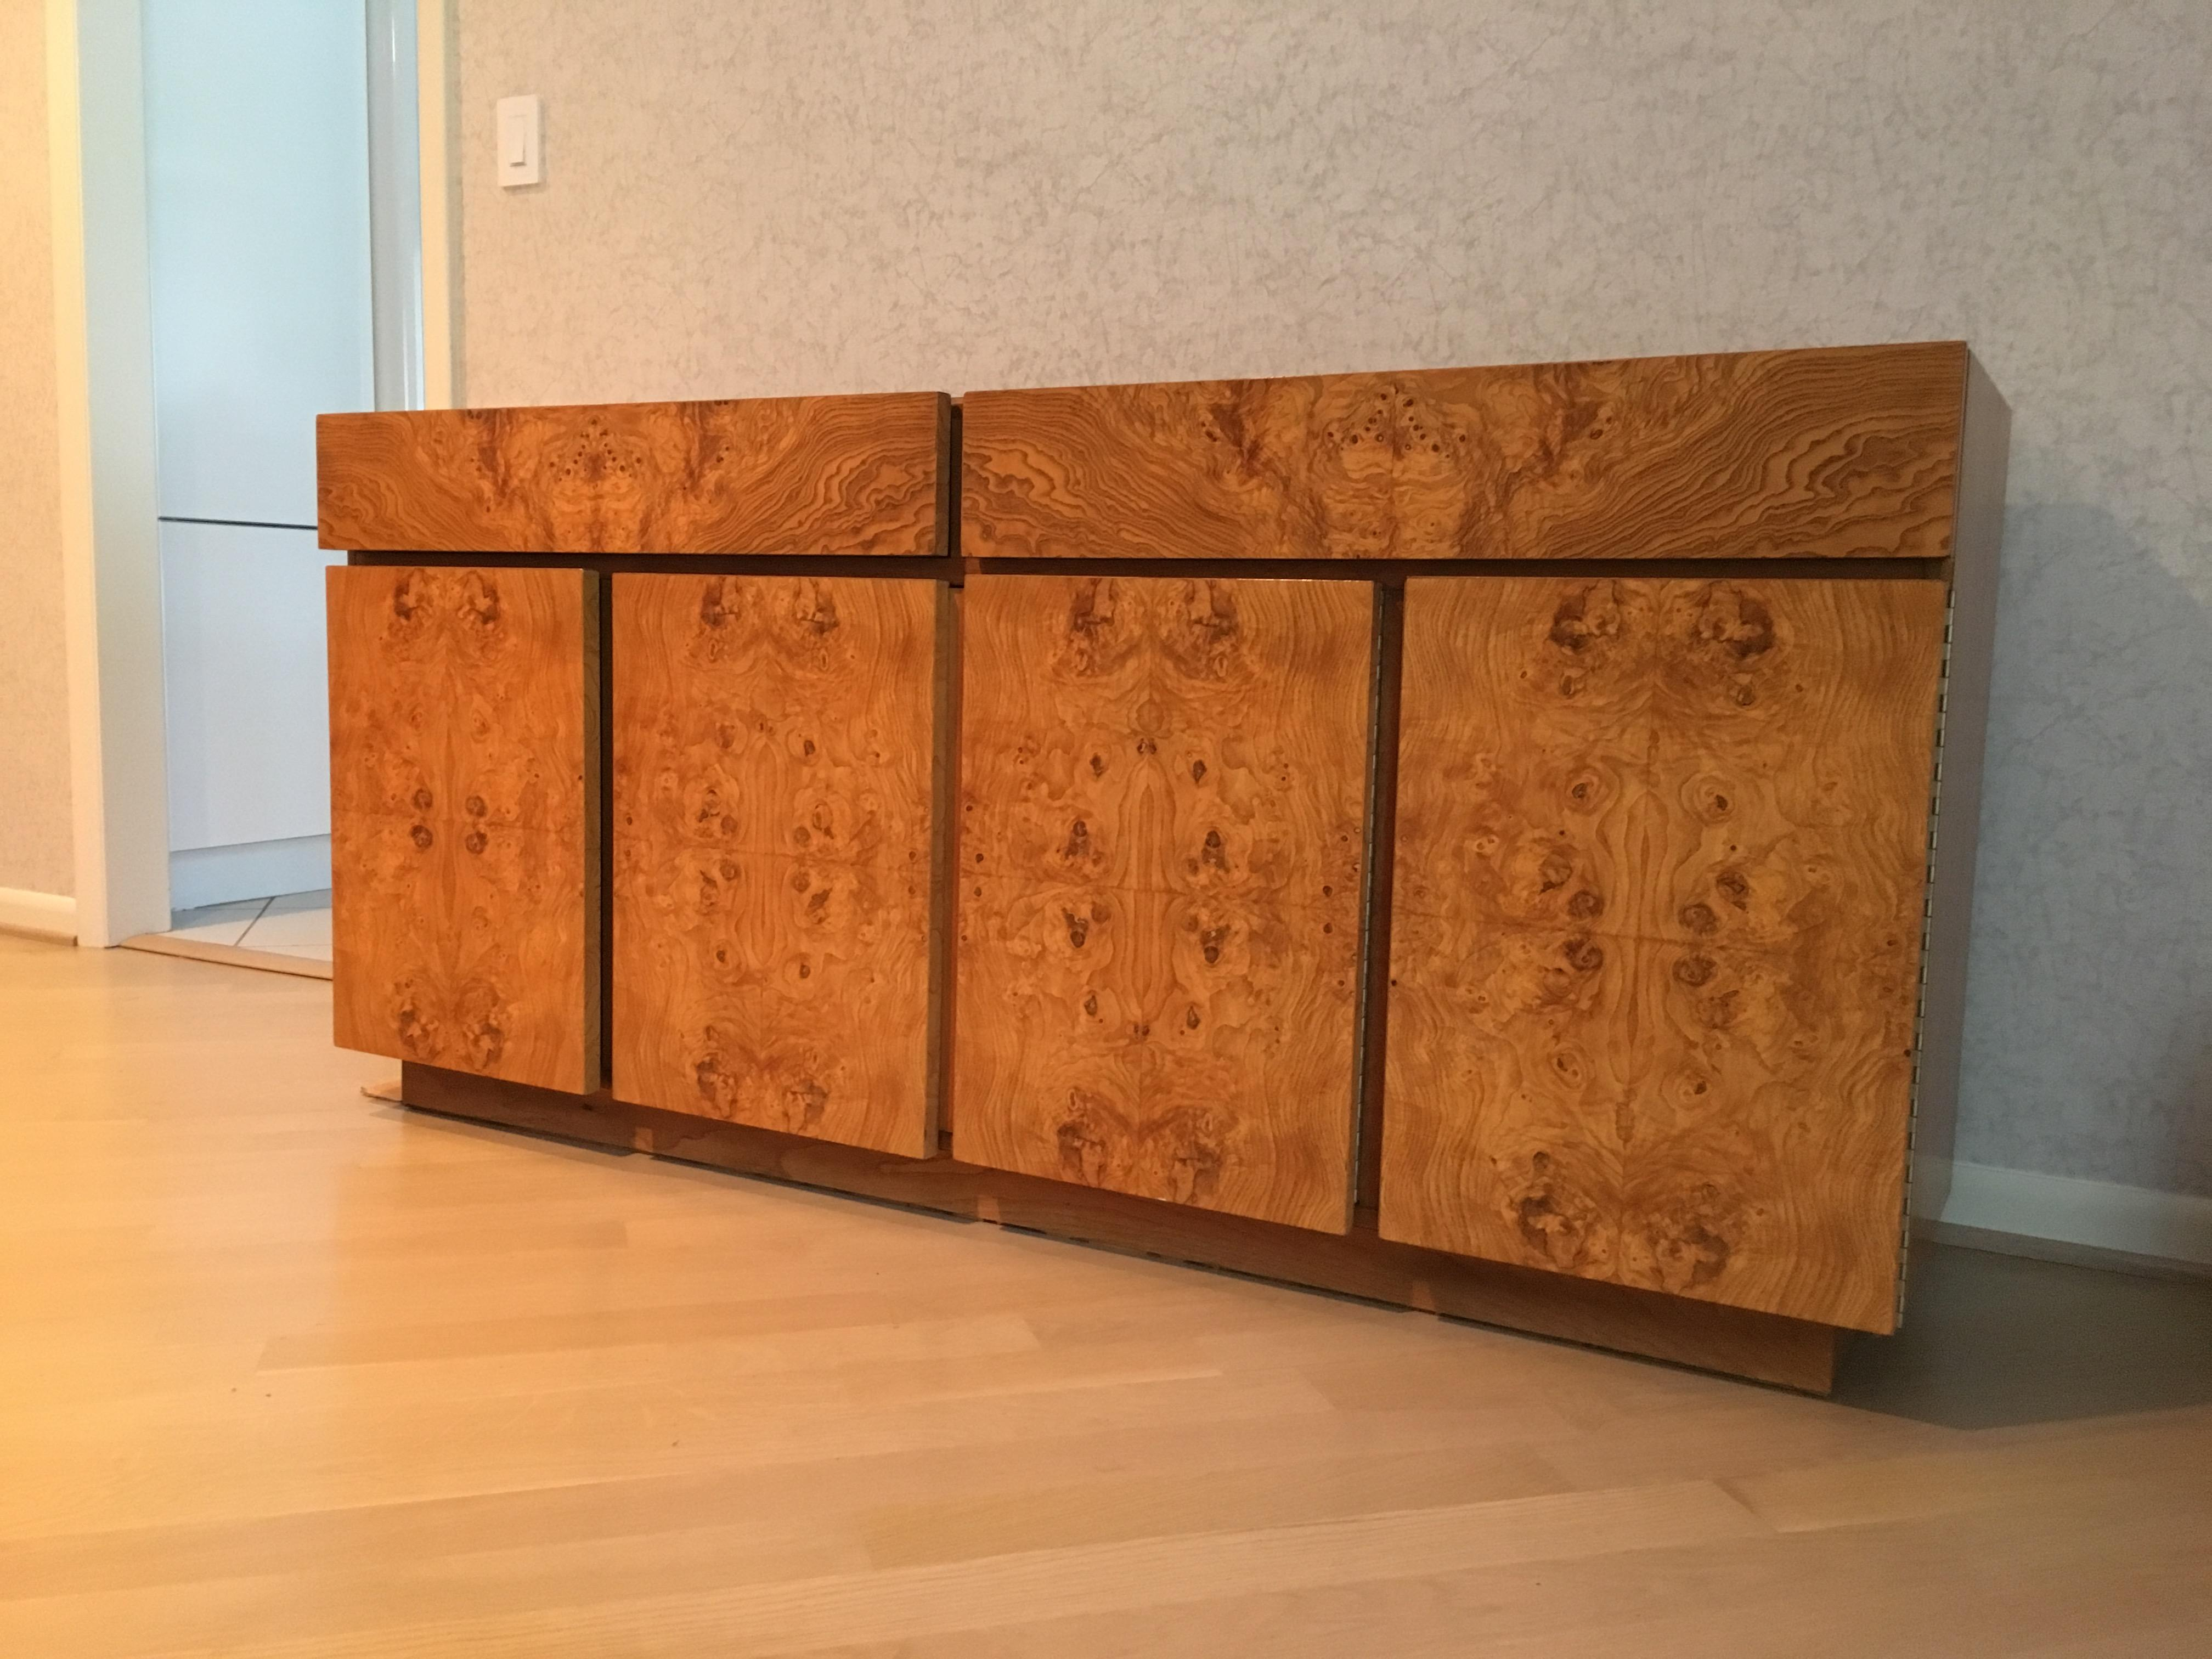 lane furniture burl wood credenza image 2 of 5